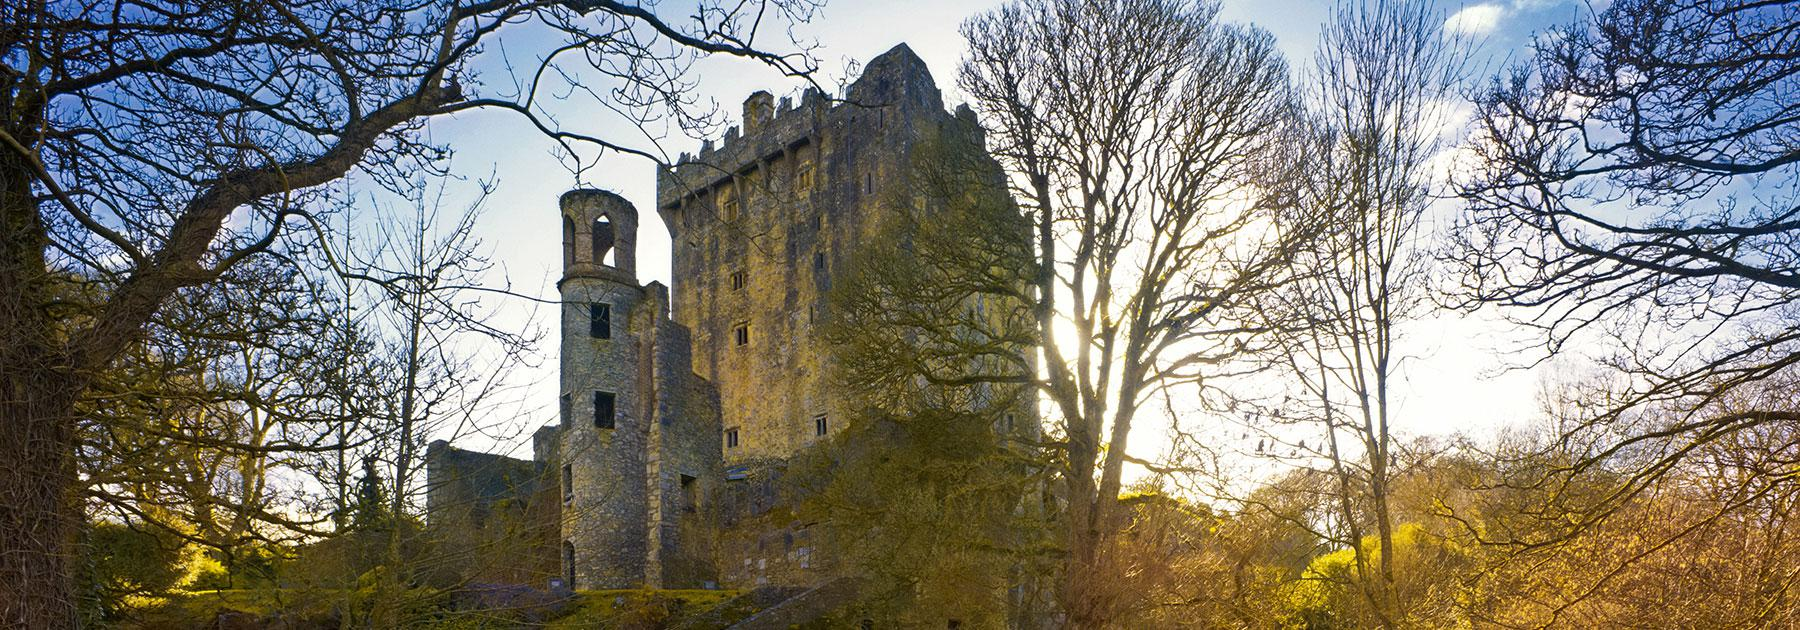 Ireland Vacation Packages Ireland Trips With Airfare From Gotoday - Irish vacations